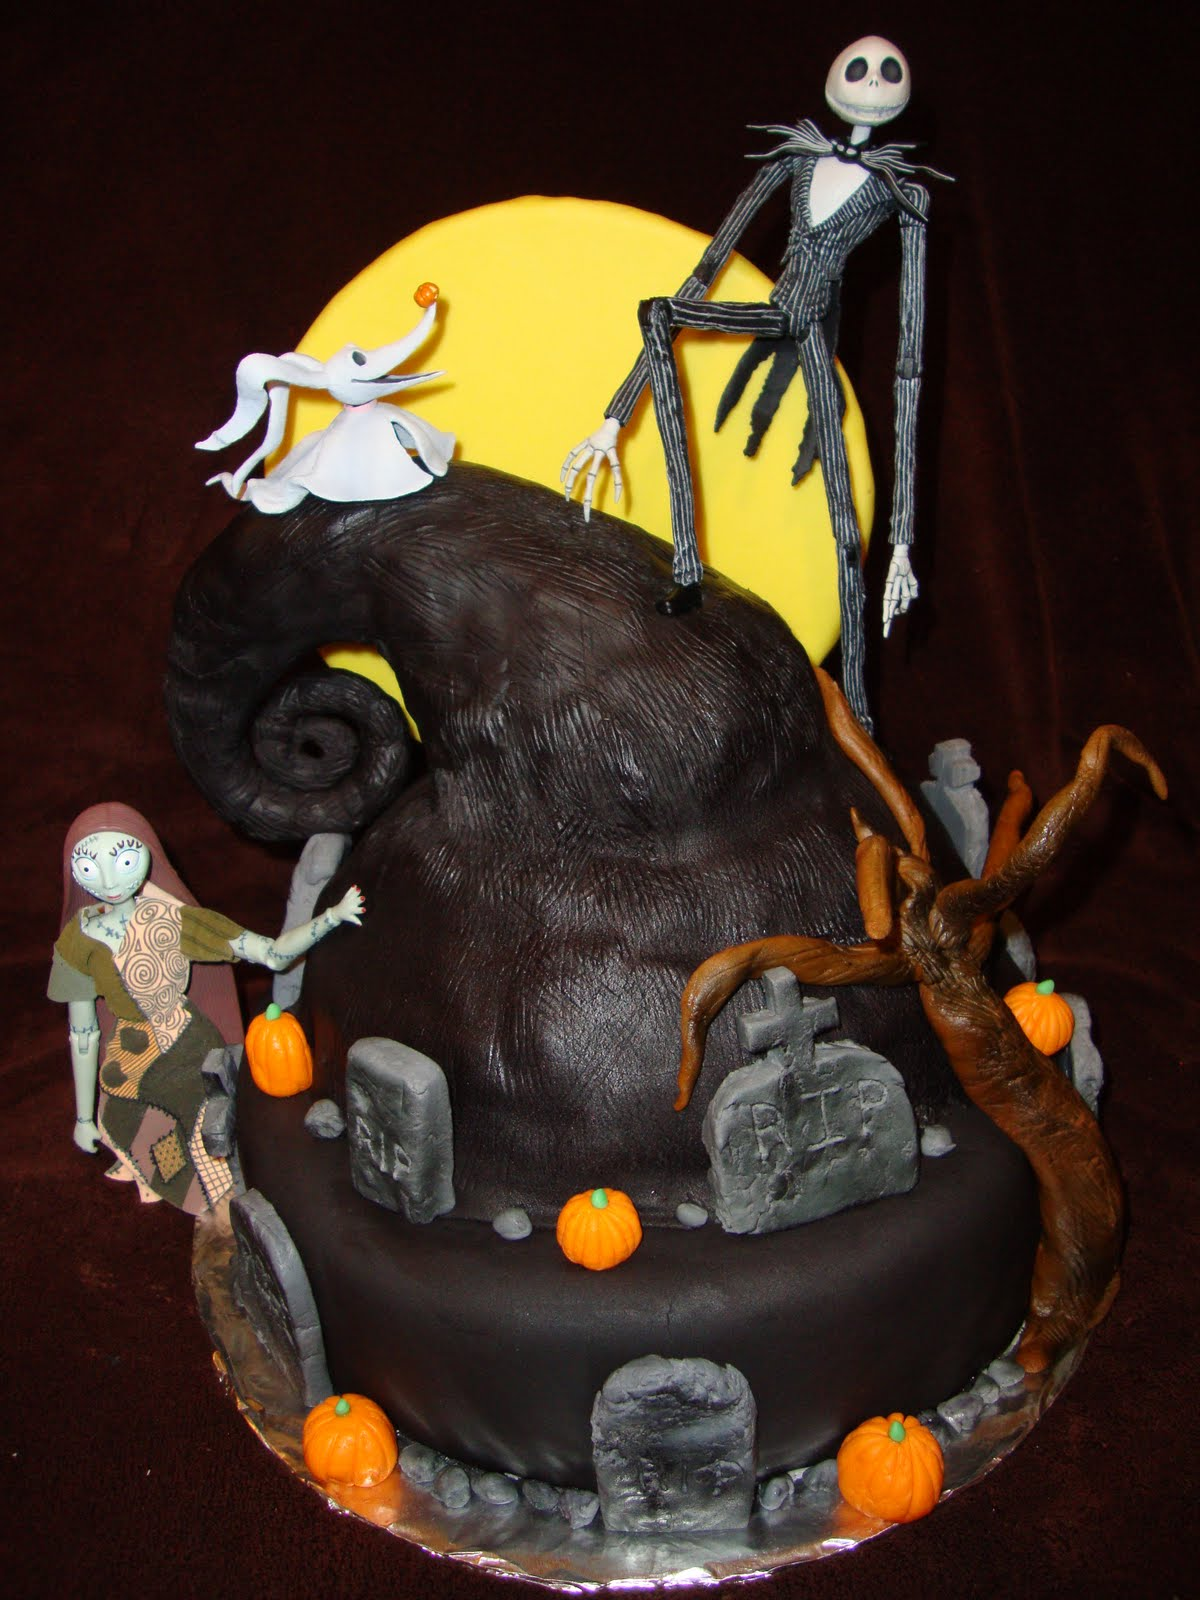 A cake made to look like a scene from A Nightmare Before Christmas, with Jack, Sally and Zero the ghost dog